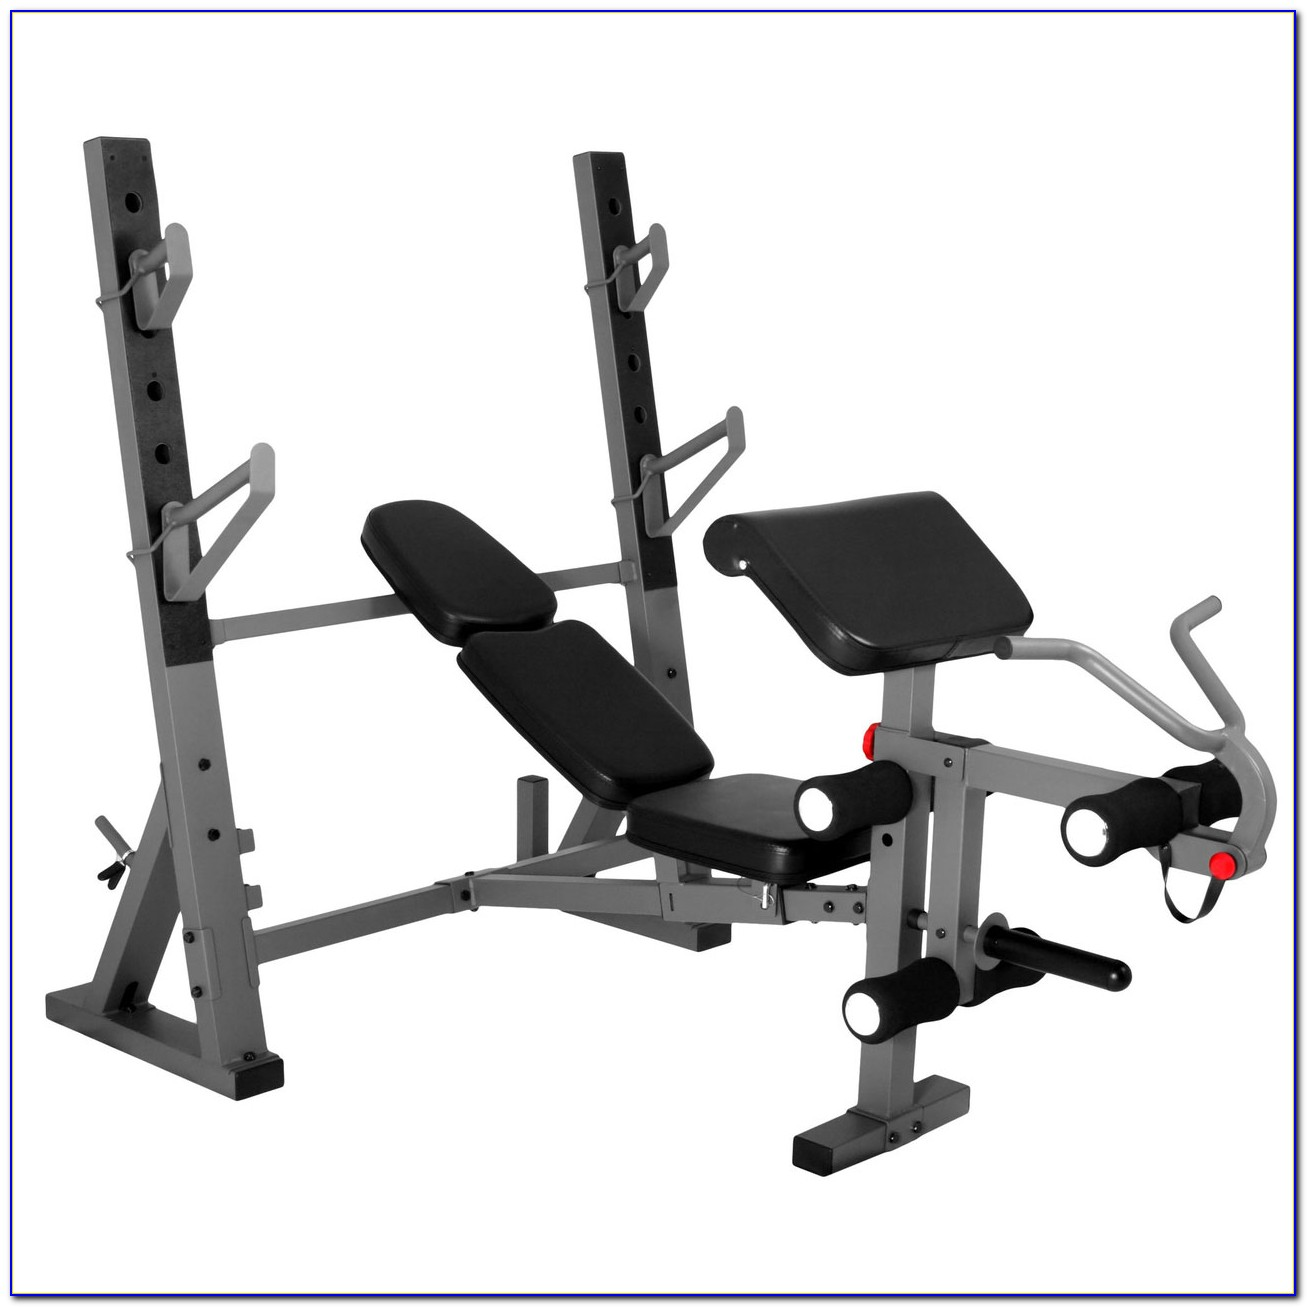 Self Spotting Bench Press Bar Weight